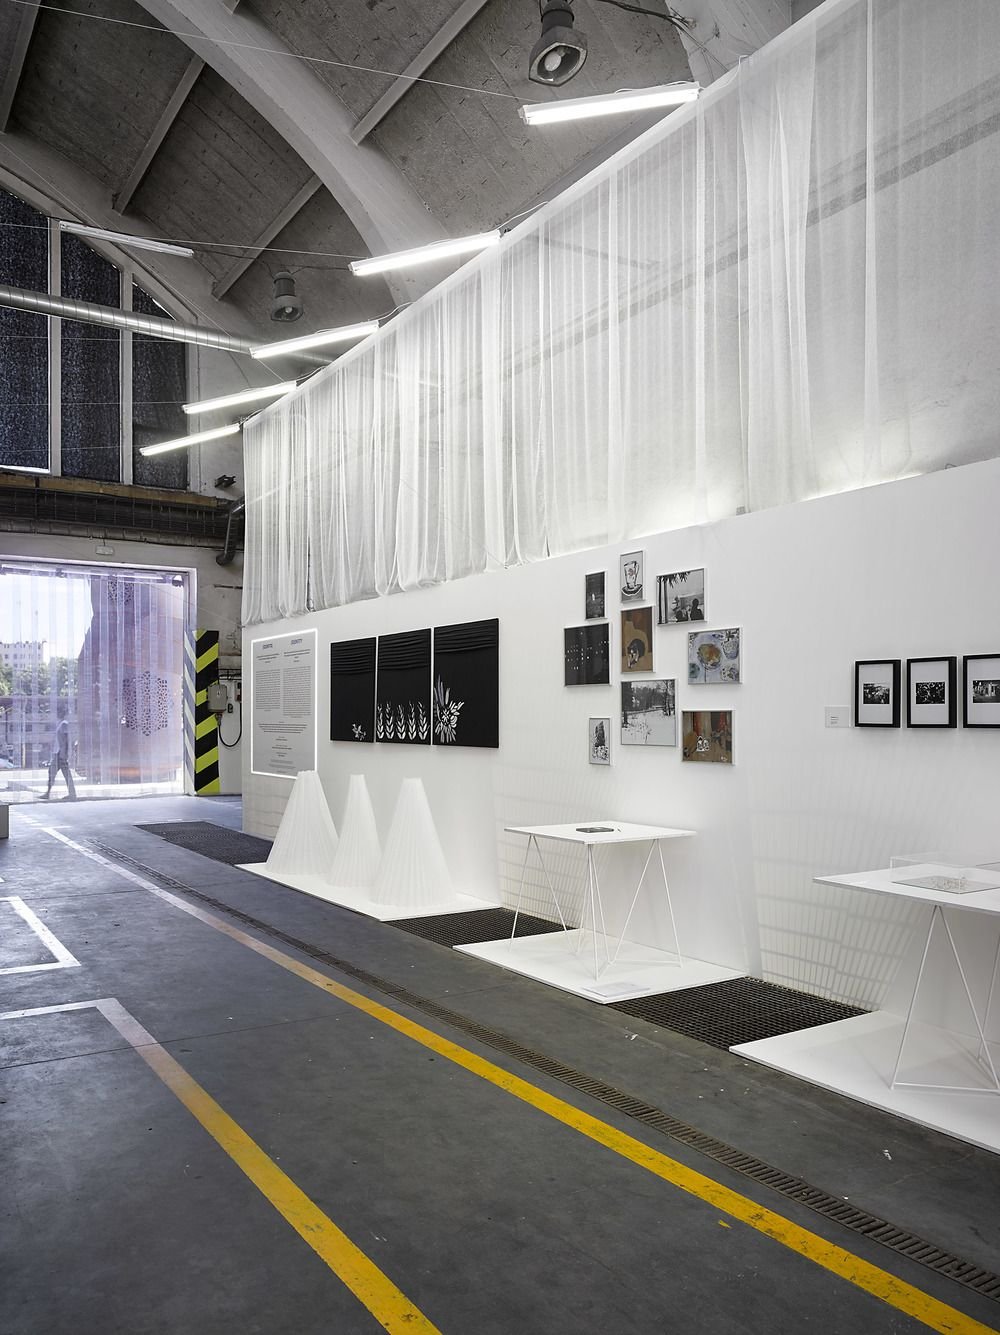 exhibition design by Formafatal studio